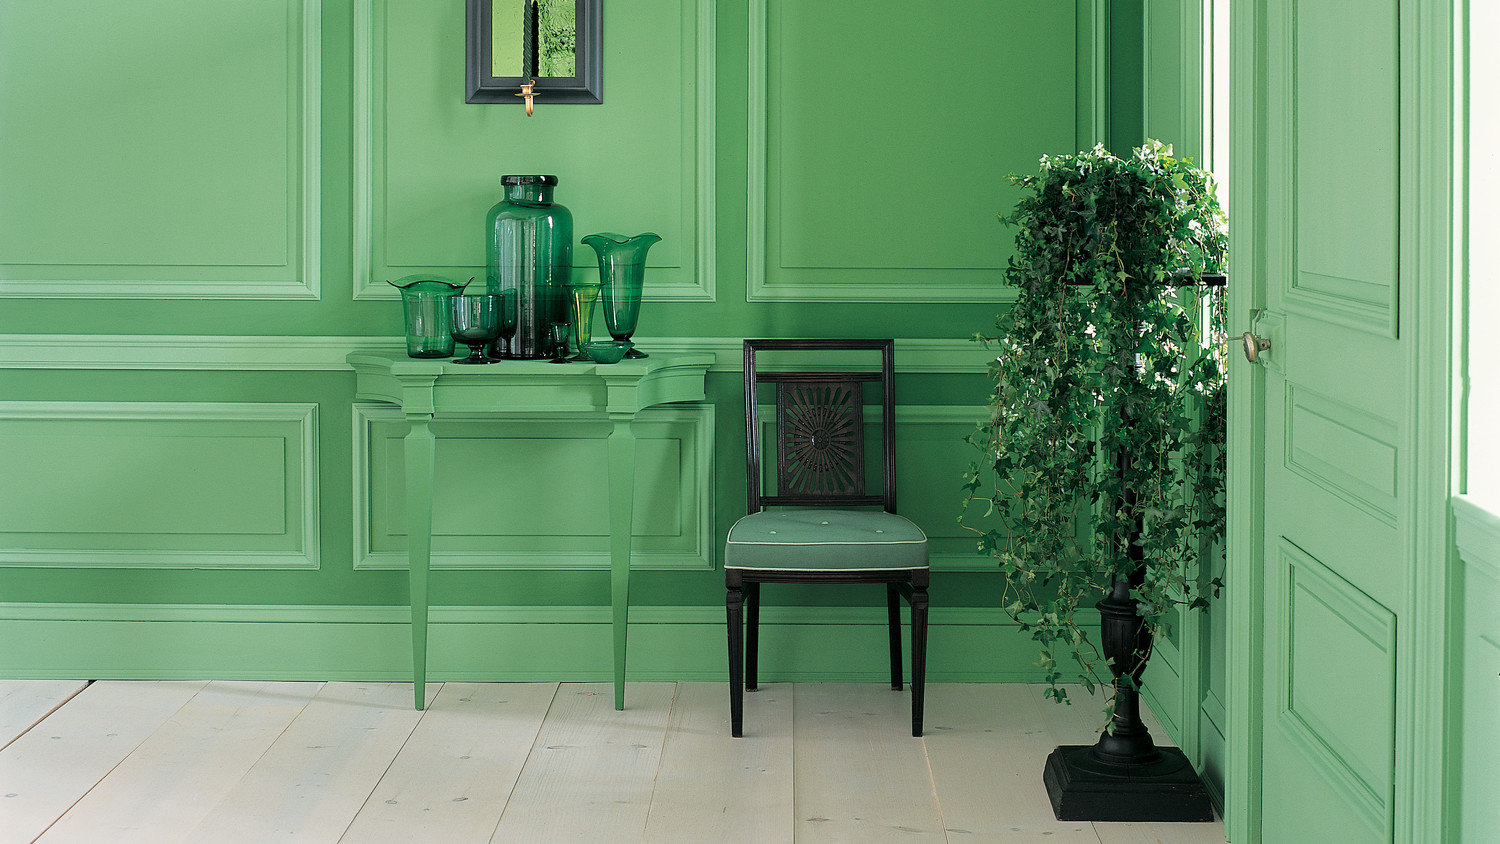 living room decor styles decorative items for green rooms | martha stewart